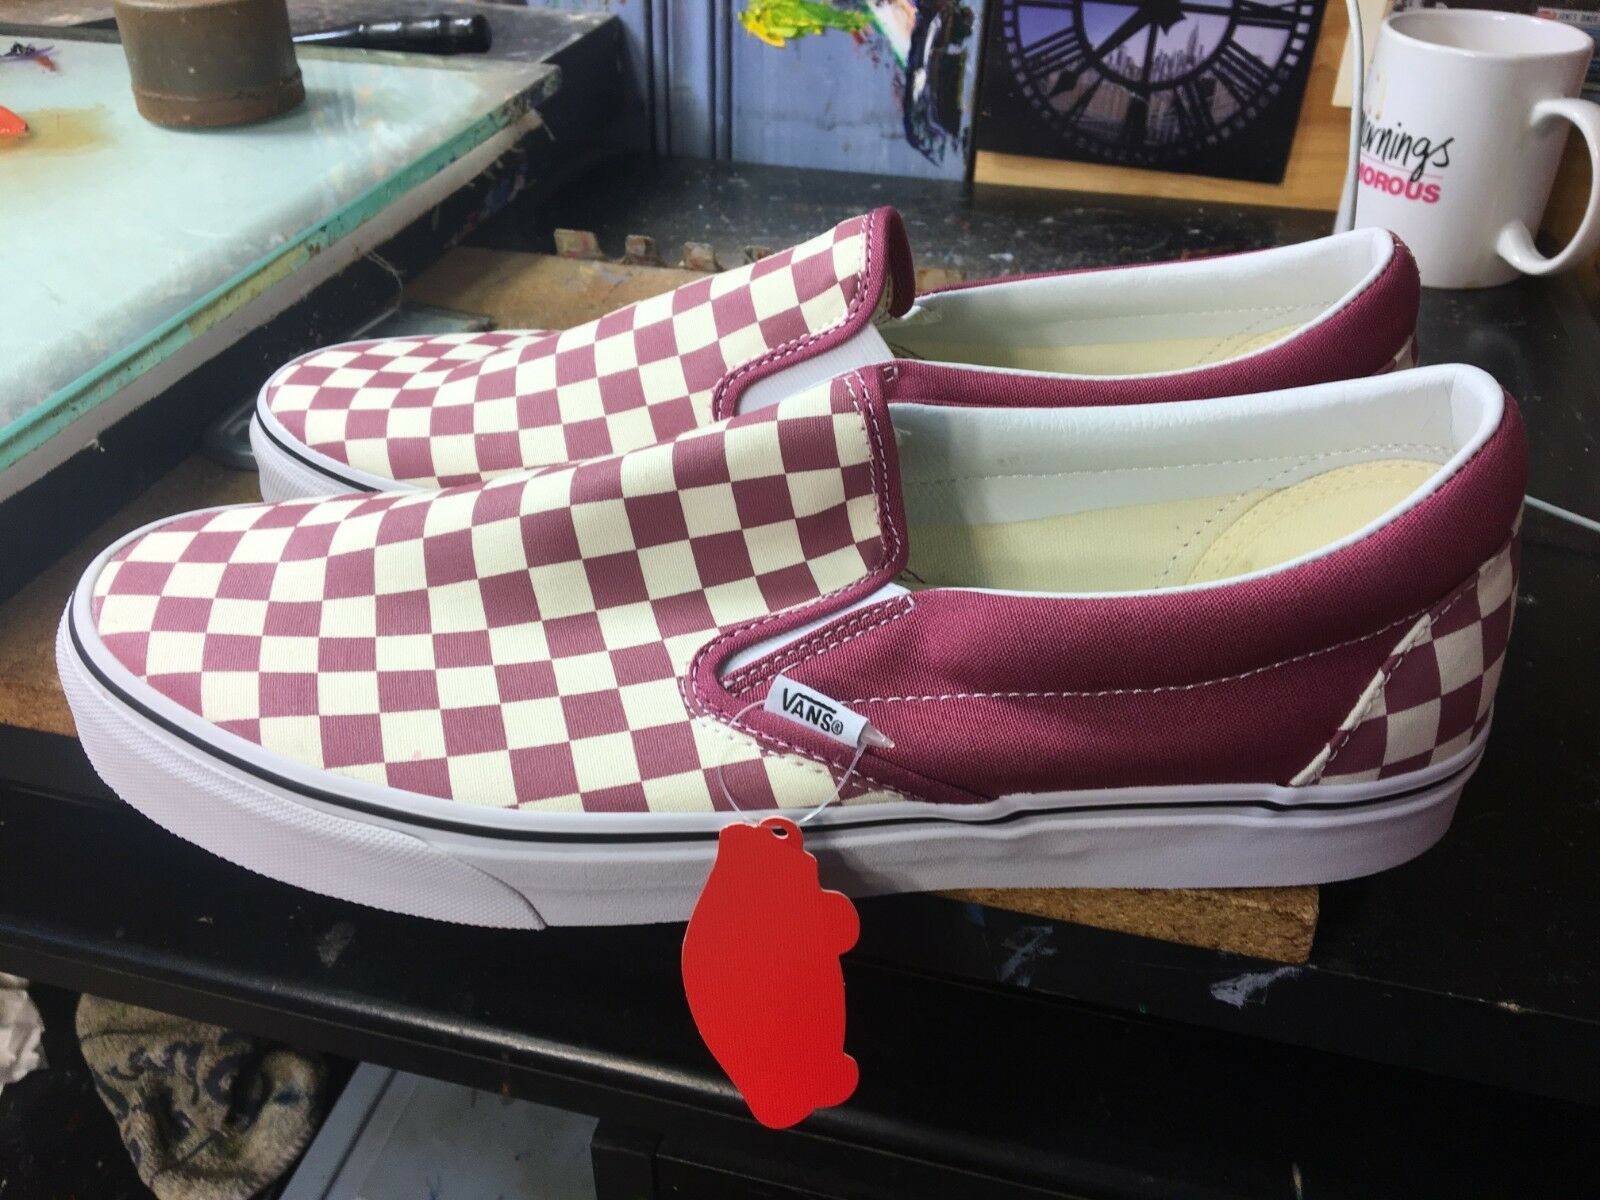 Vans Classic Slip-On (Checkerboard) Dry pink White Size US 10.5 Men VN0A38F7U7A